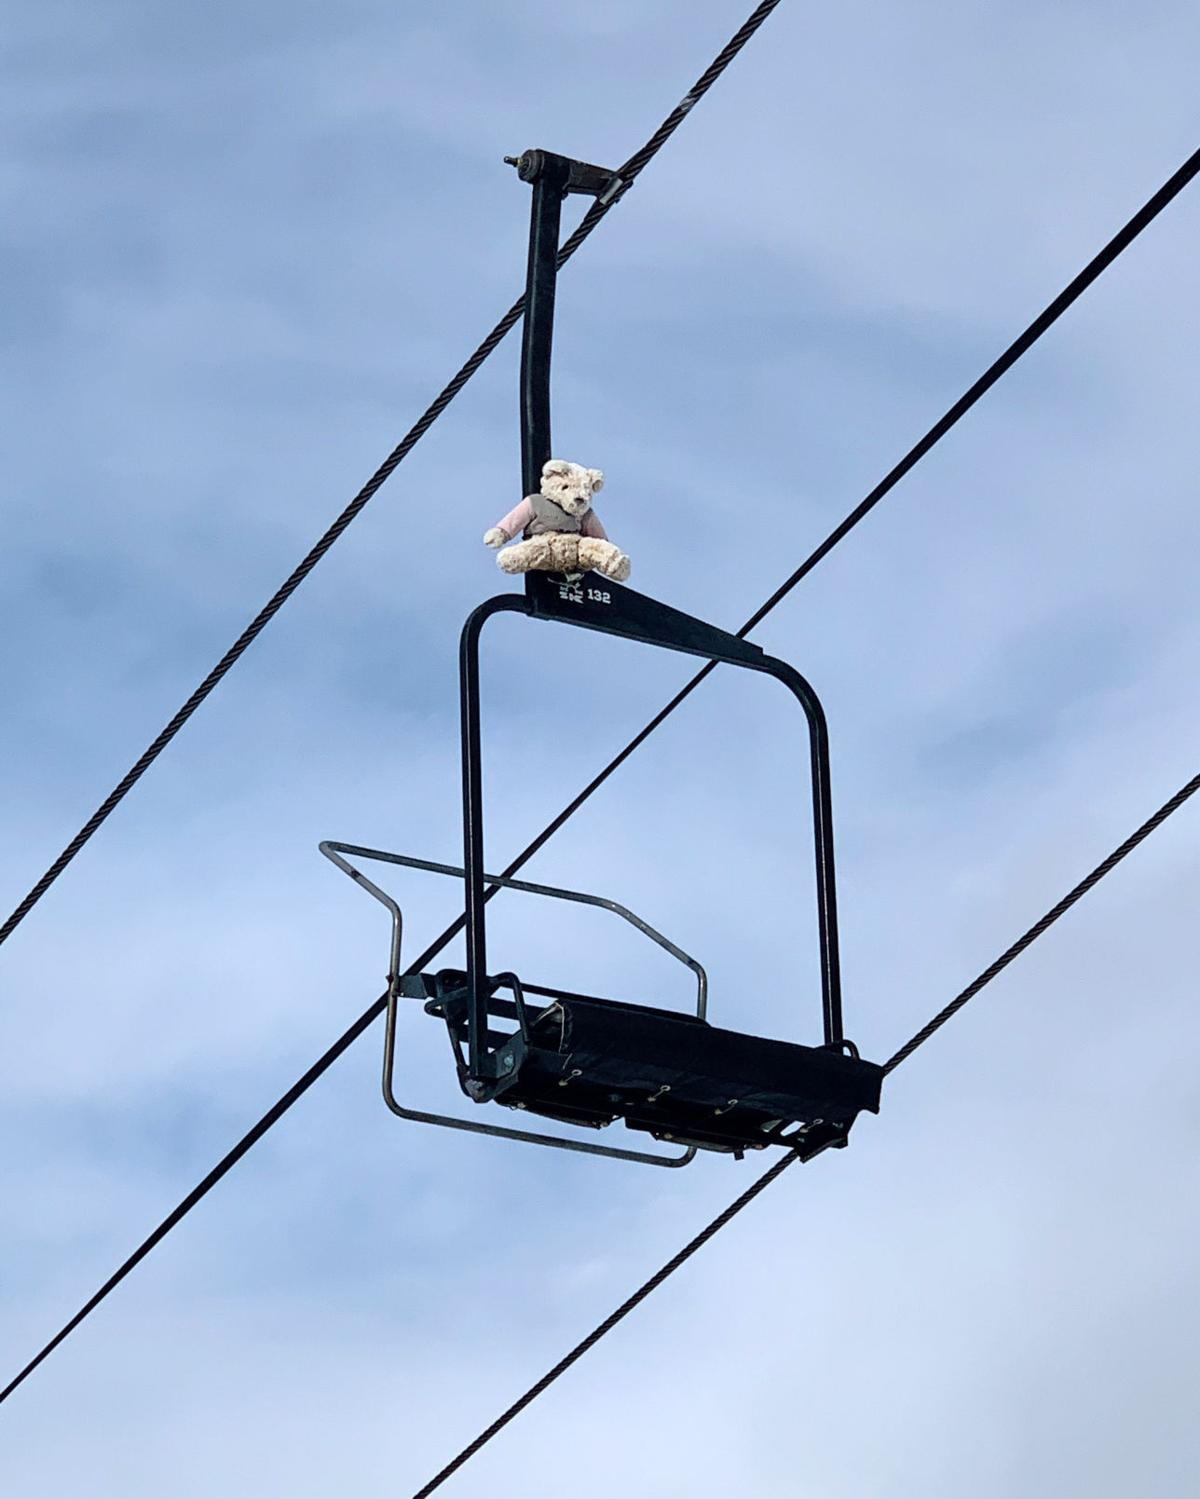 Snow King Summit chairlift